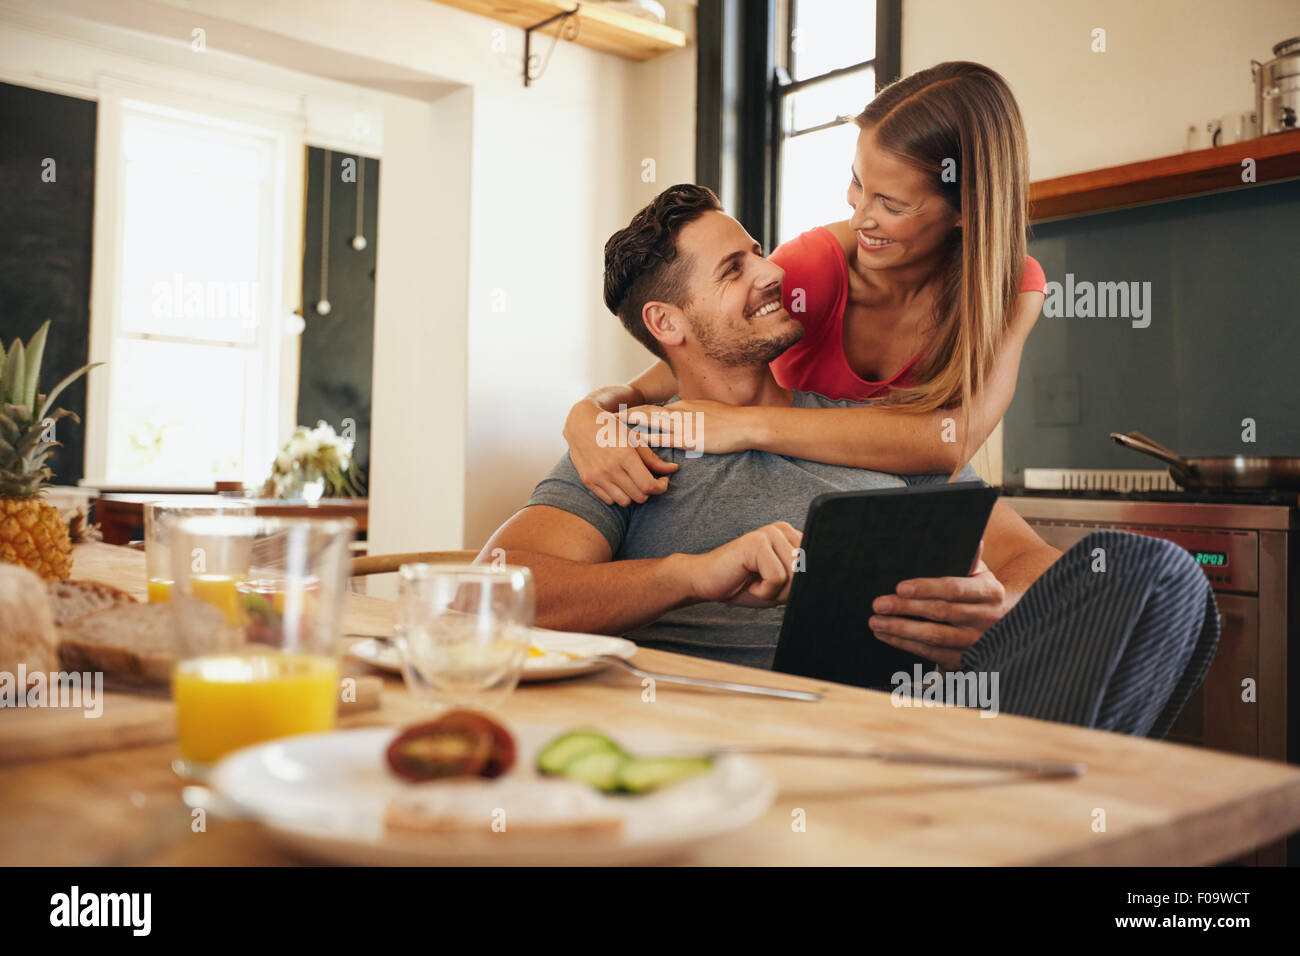 Shot of loving young couple in kitchen by breakfast table in morning. Man using digital table while woman hugging - Stock Image